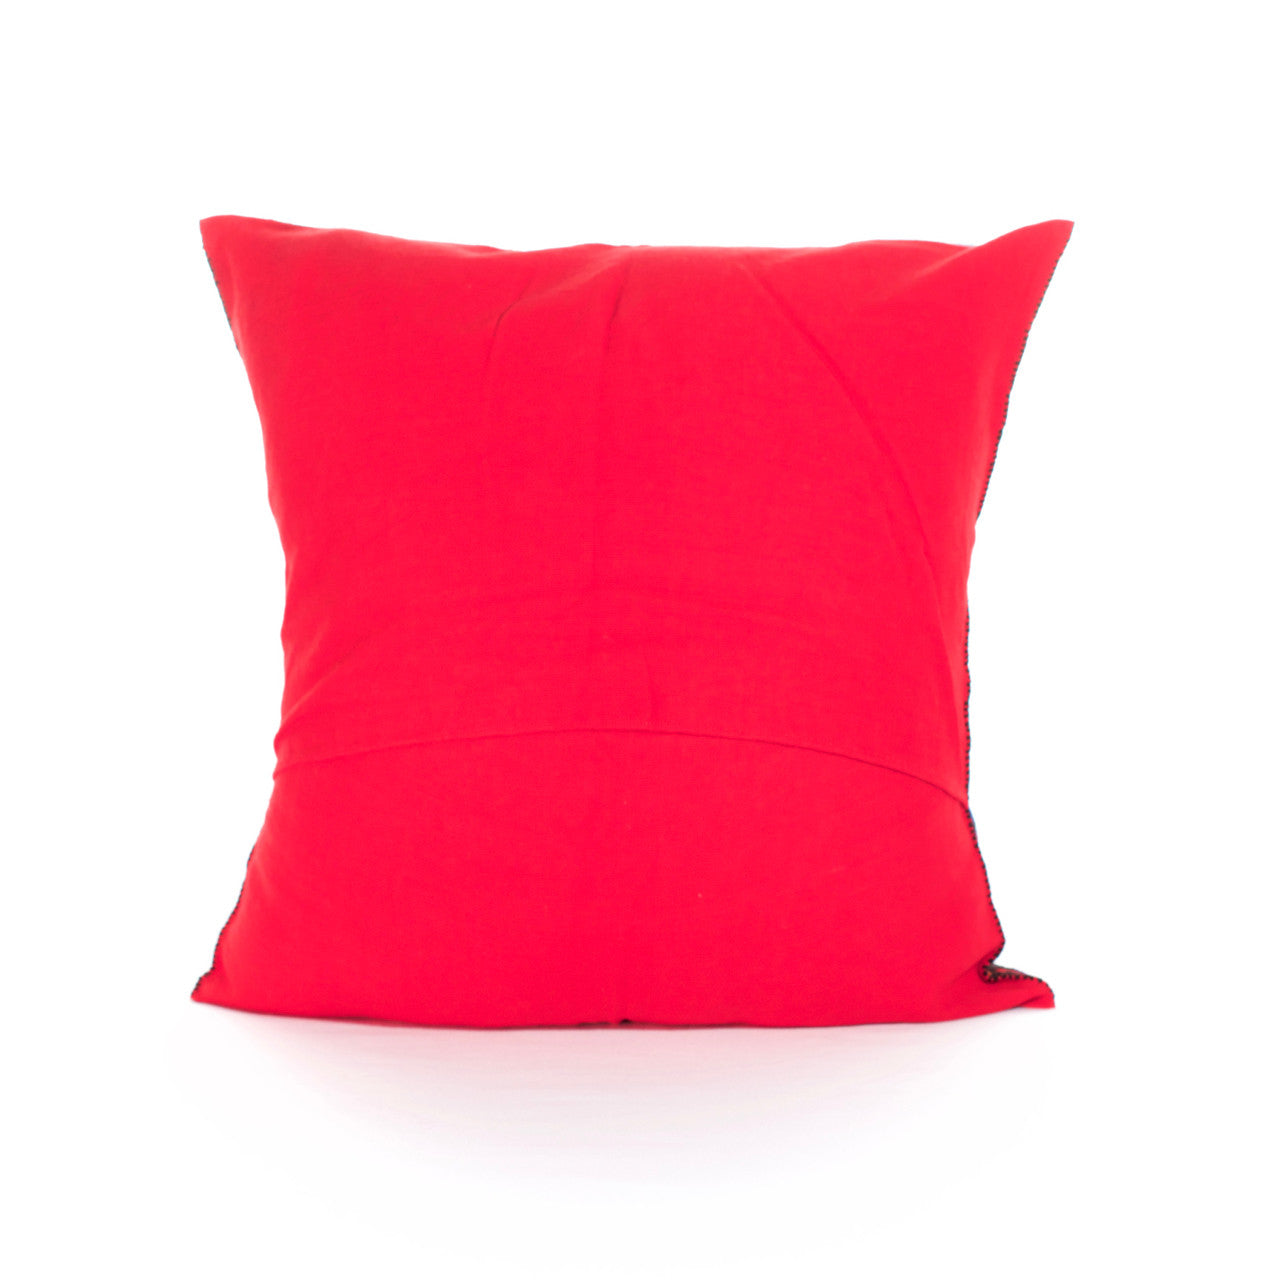 Diamante Cushion 08  Cushion Red with Rainbow Border - Cielo Collective handmade Mexico Guatemala